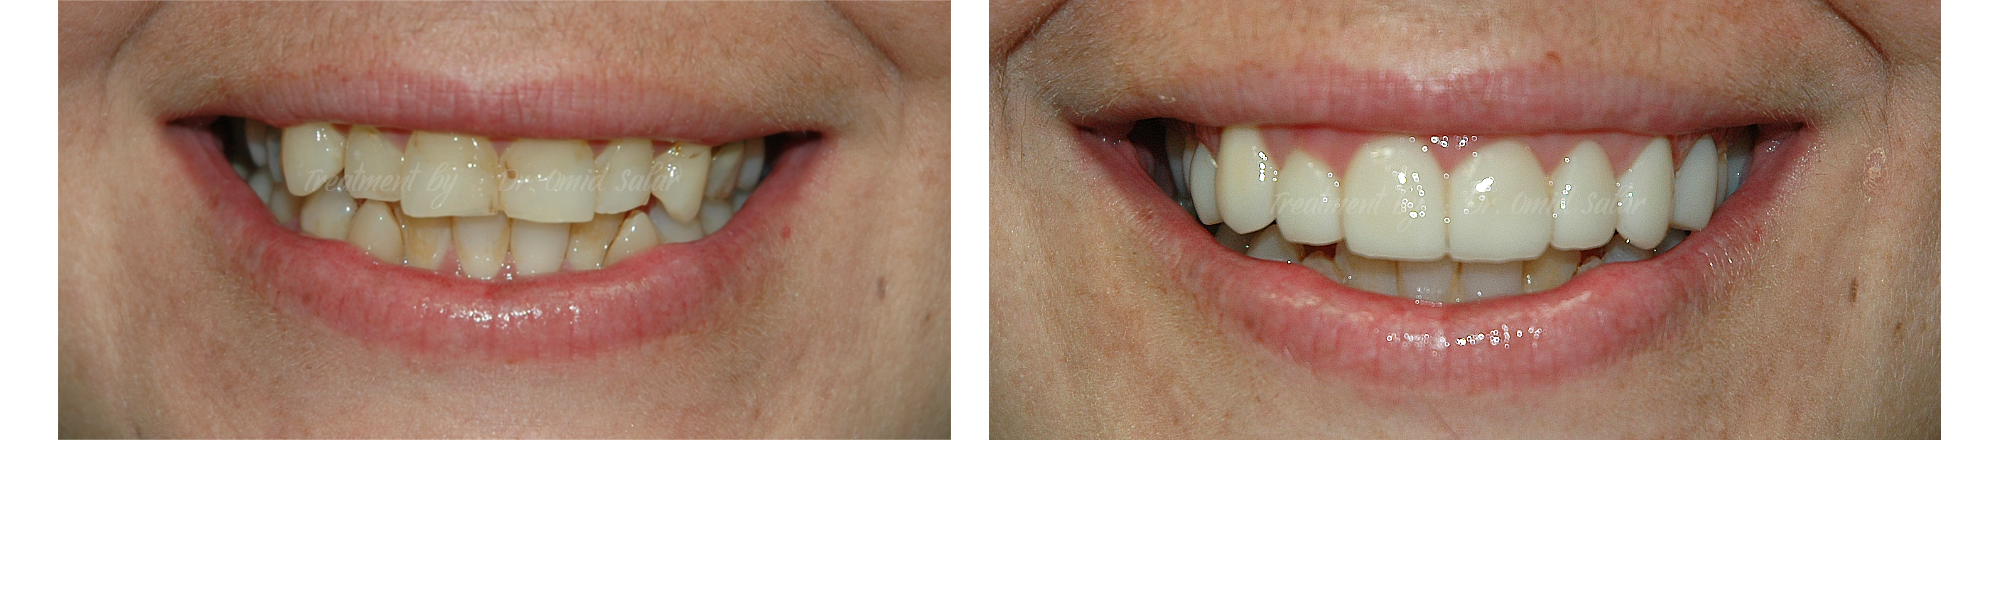 crooked teeth before after photo - porcelain veneers